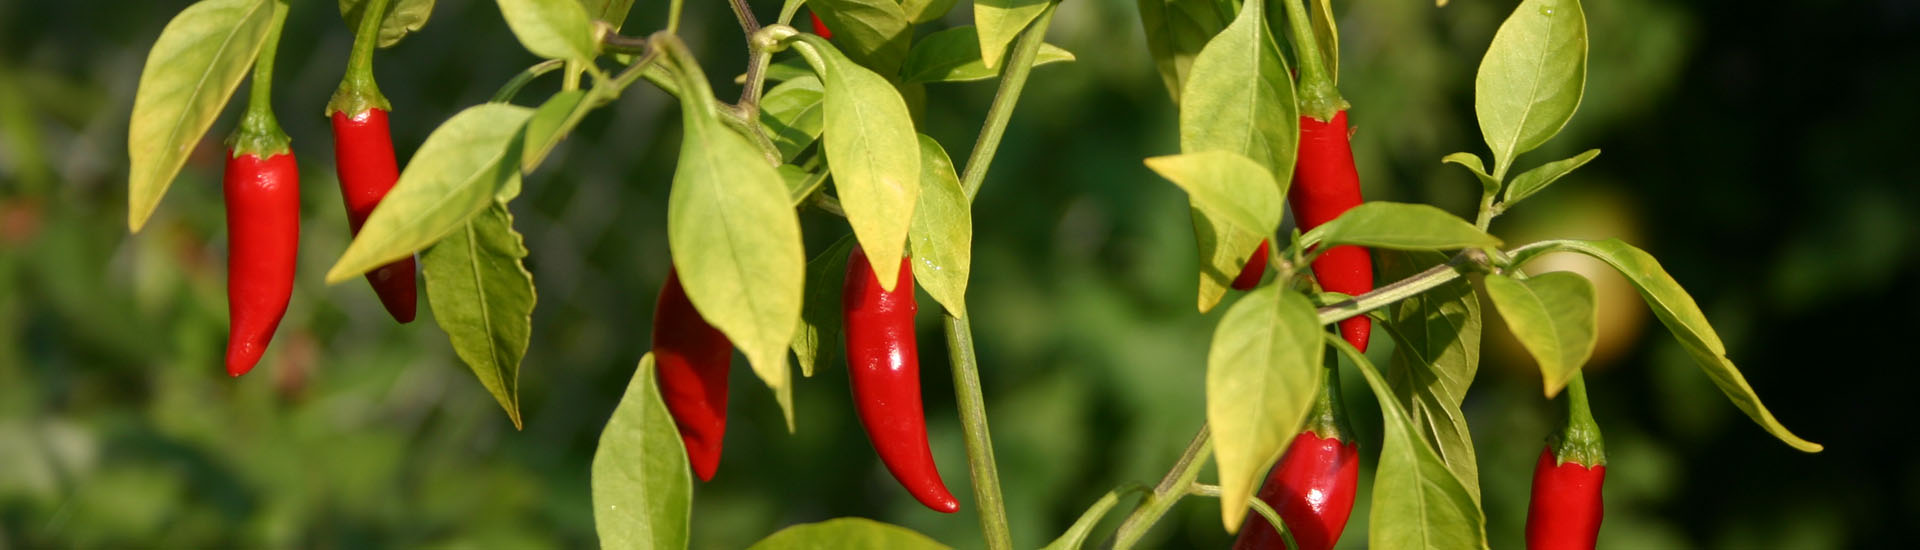 Peppers_02